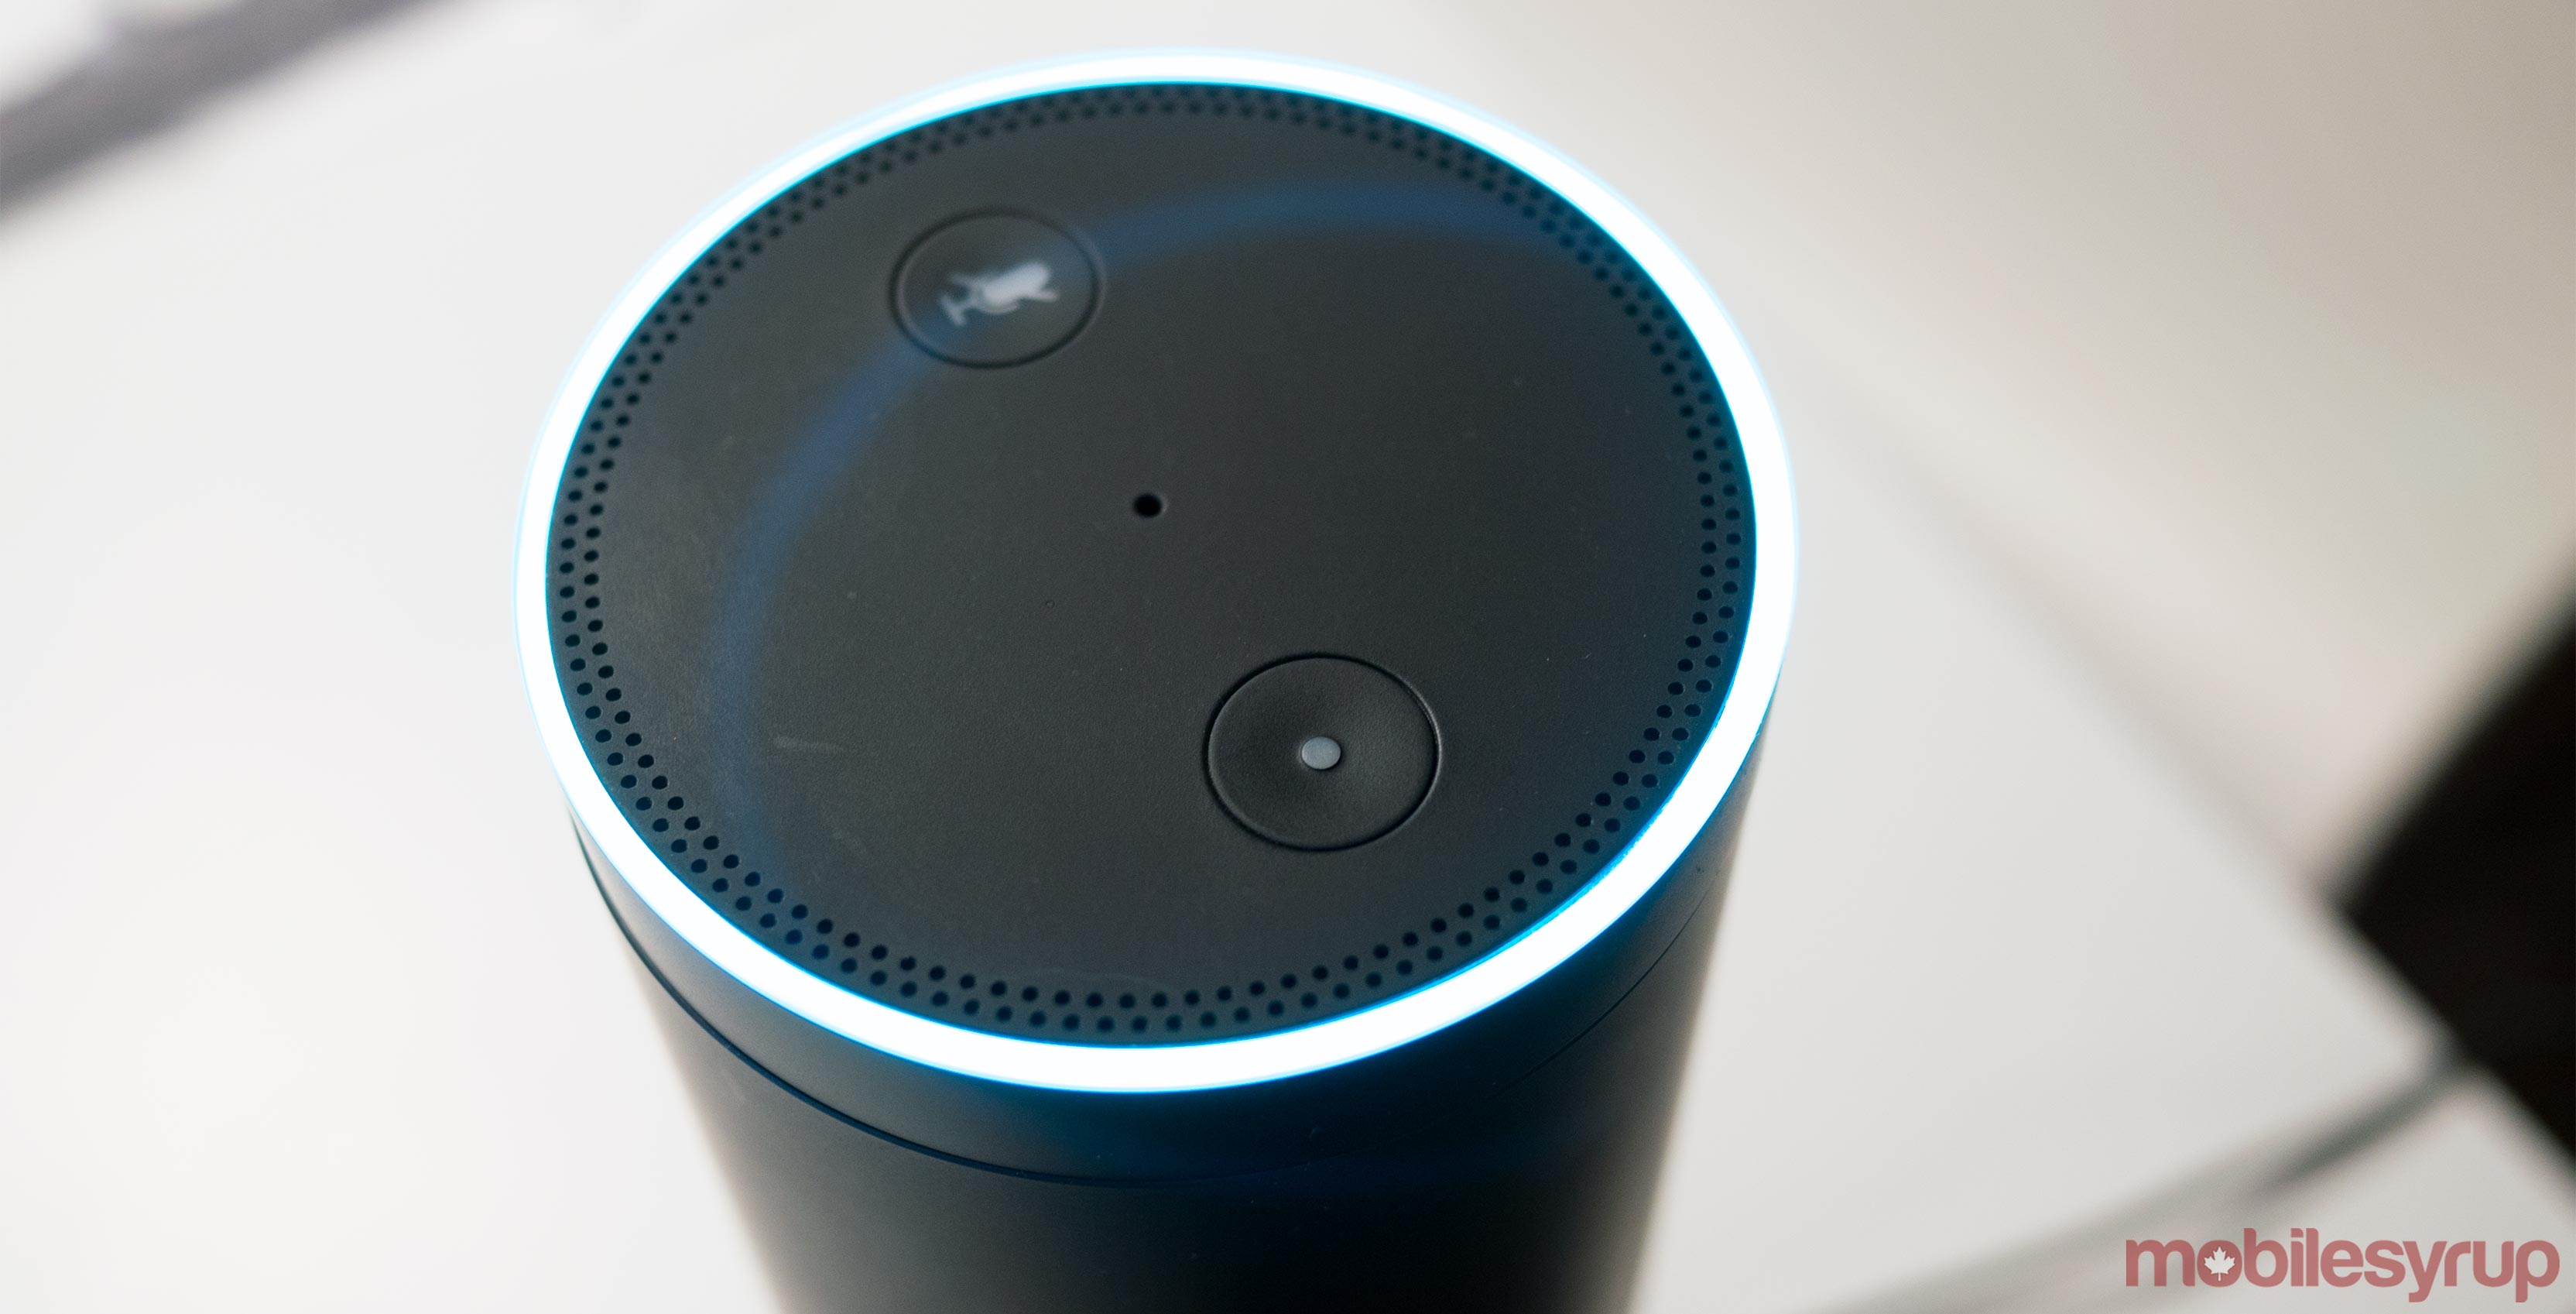 voice activated assistants Amazon Alexa